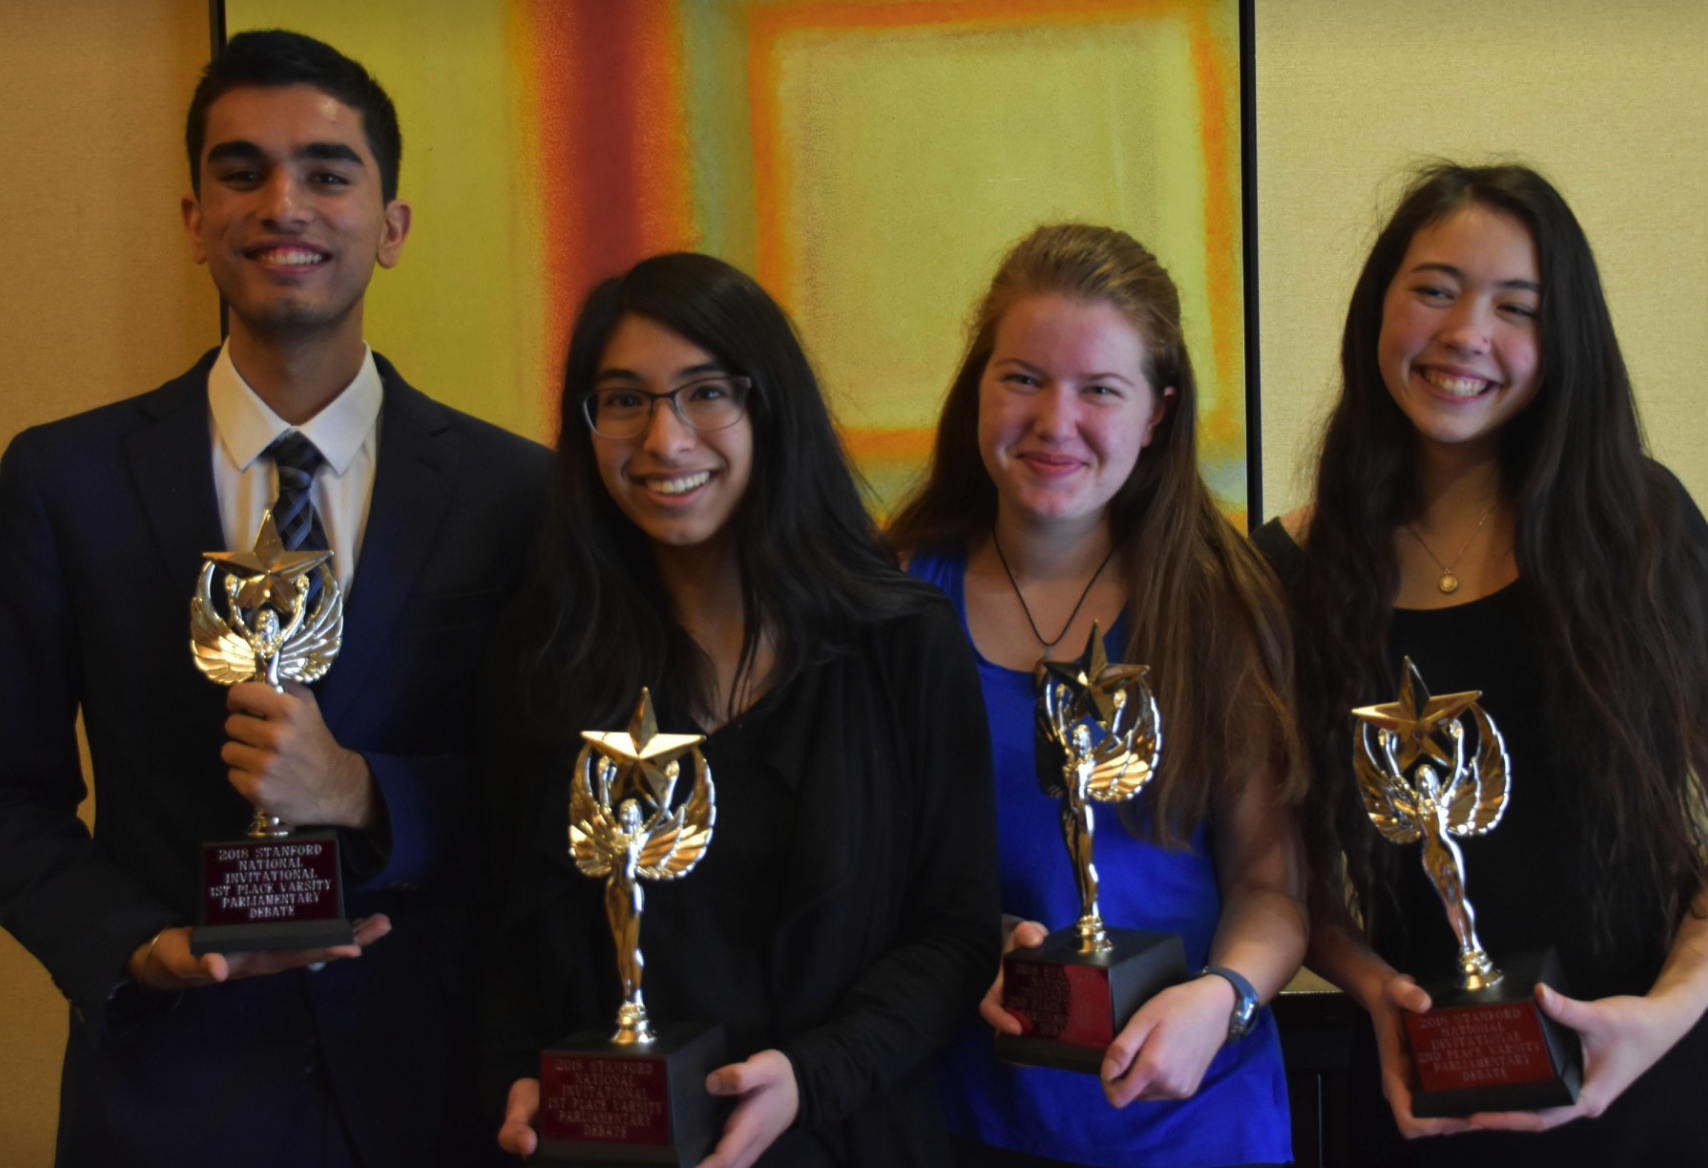 (left to right) Pombra, Bhattacharya, Aaronson, & Larson pose with awards after the final round